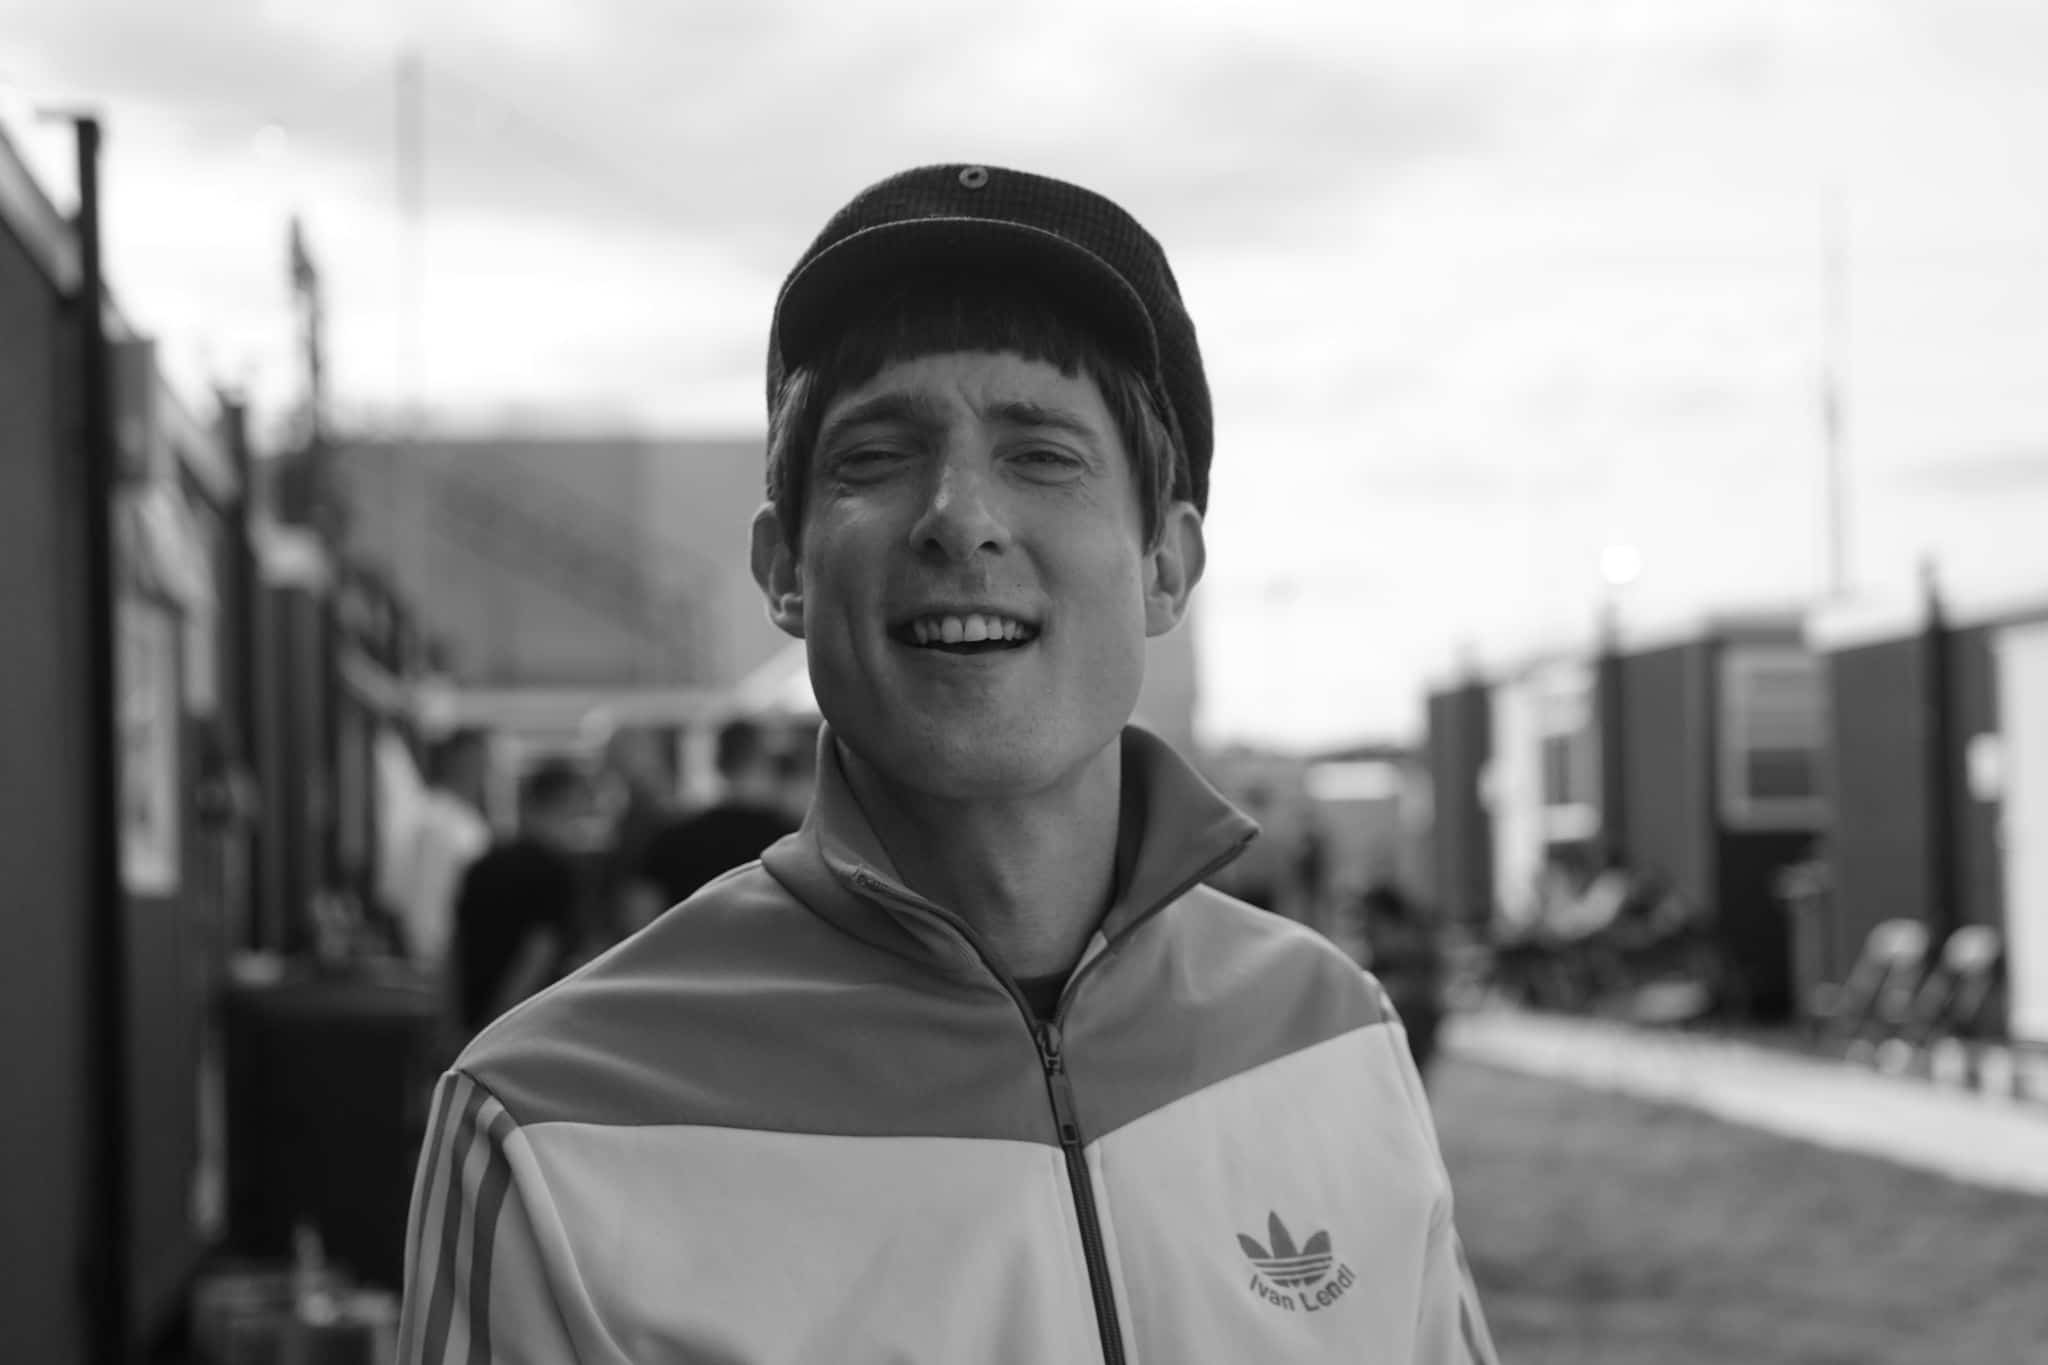 Gerry Cinnamon returns with his sophomore album The Bonny